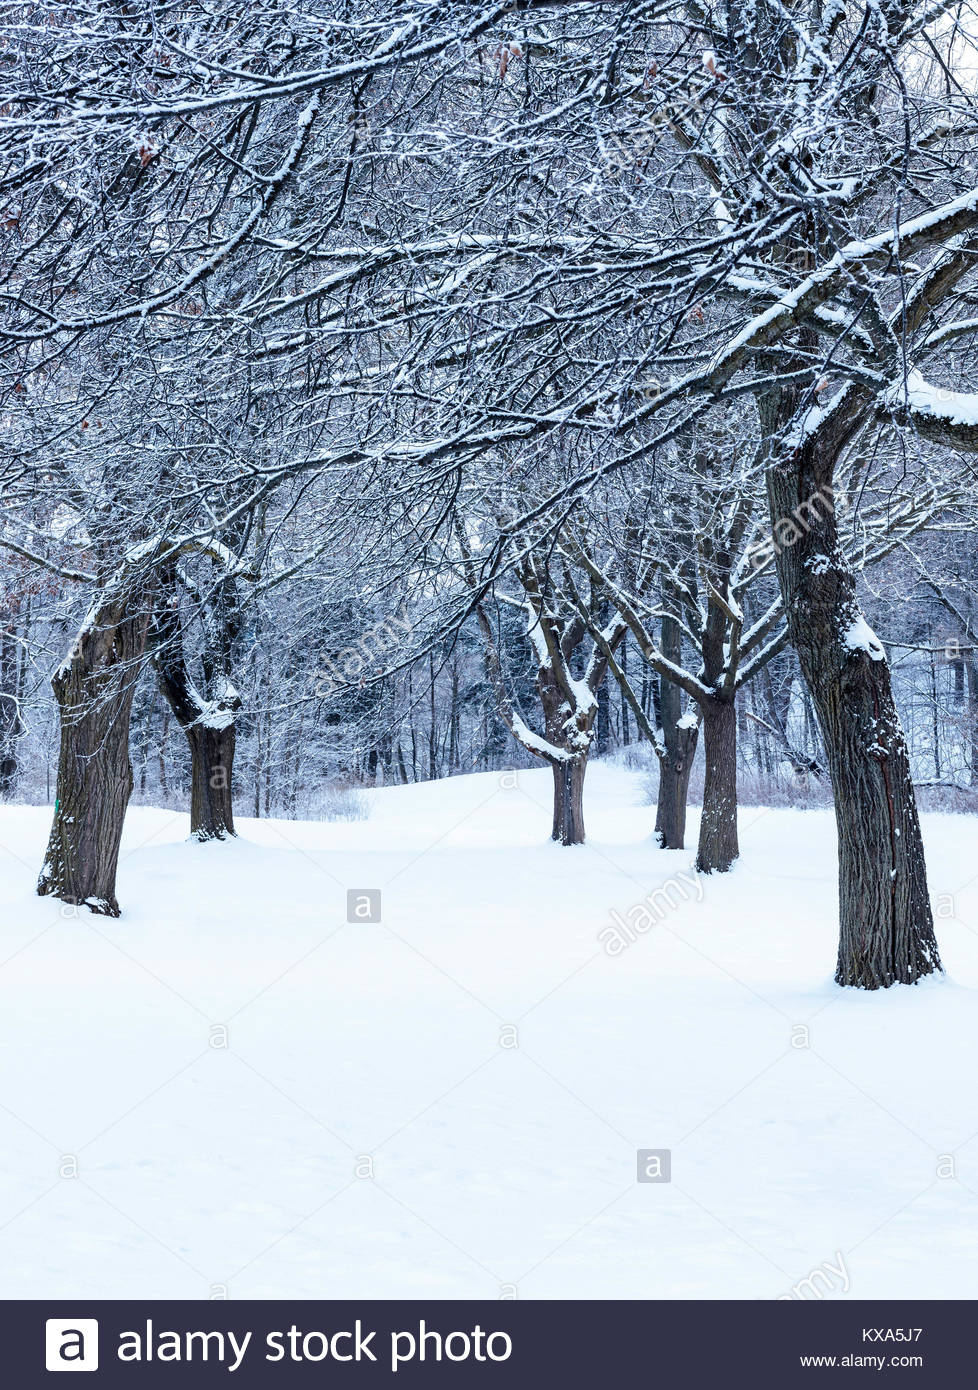 Snow covered trees after winter snowfall in Colonel Danforth Park in Toronto Ontario Canada Stock Photo